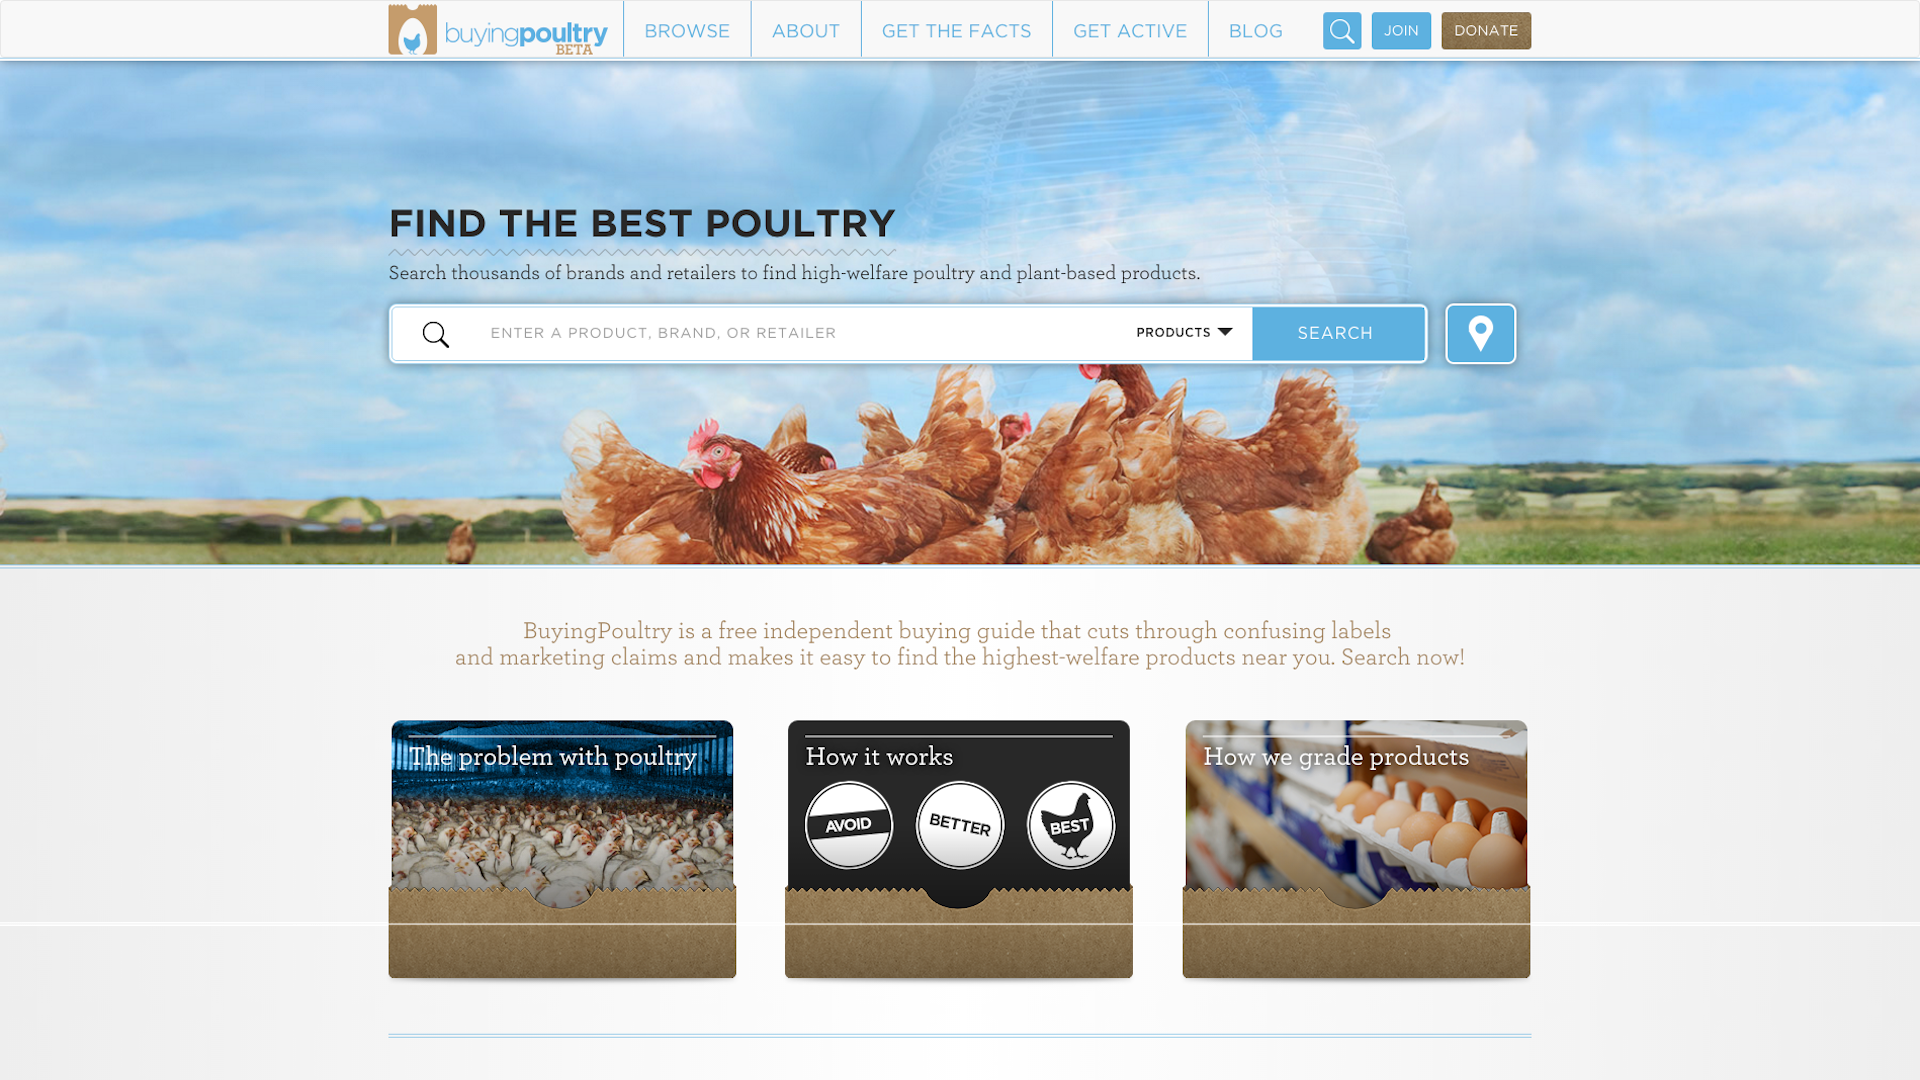 BuyingPoultry.com is a new website from Farm Forward, a national nonprofit that promotes conscientious food choices and educates about animal cruelty on traditional factory farms.